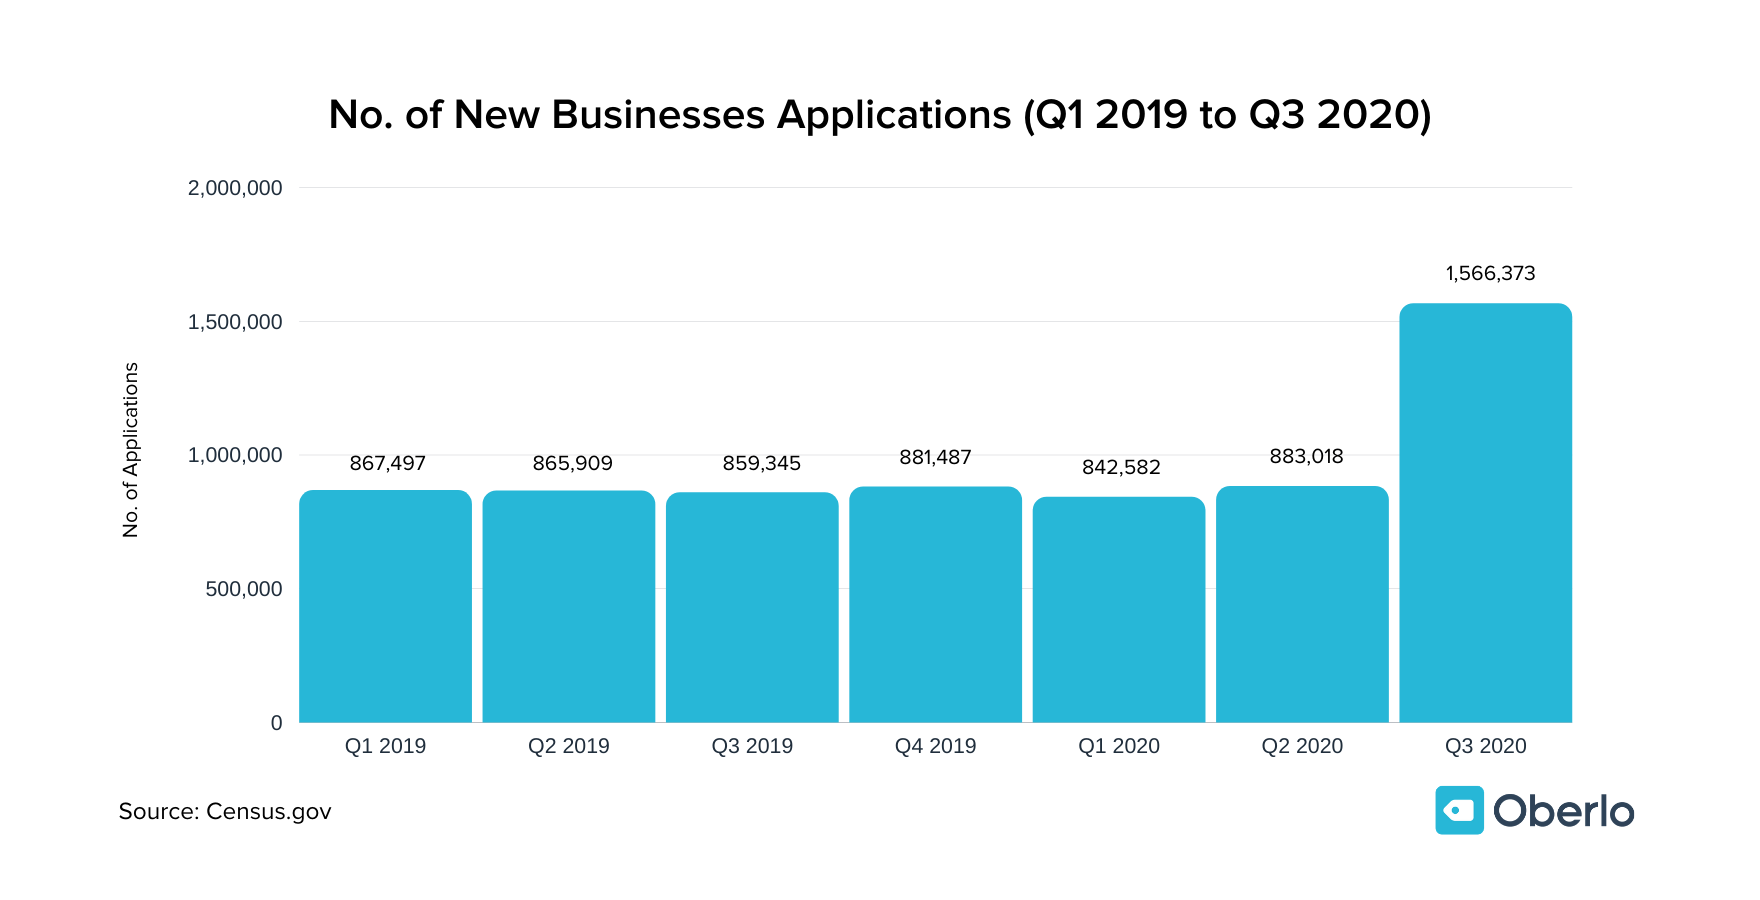 No. of New Businesses Applications (Q1 2019 to Q3 2020)